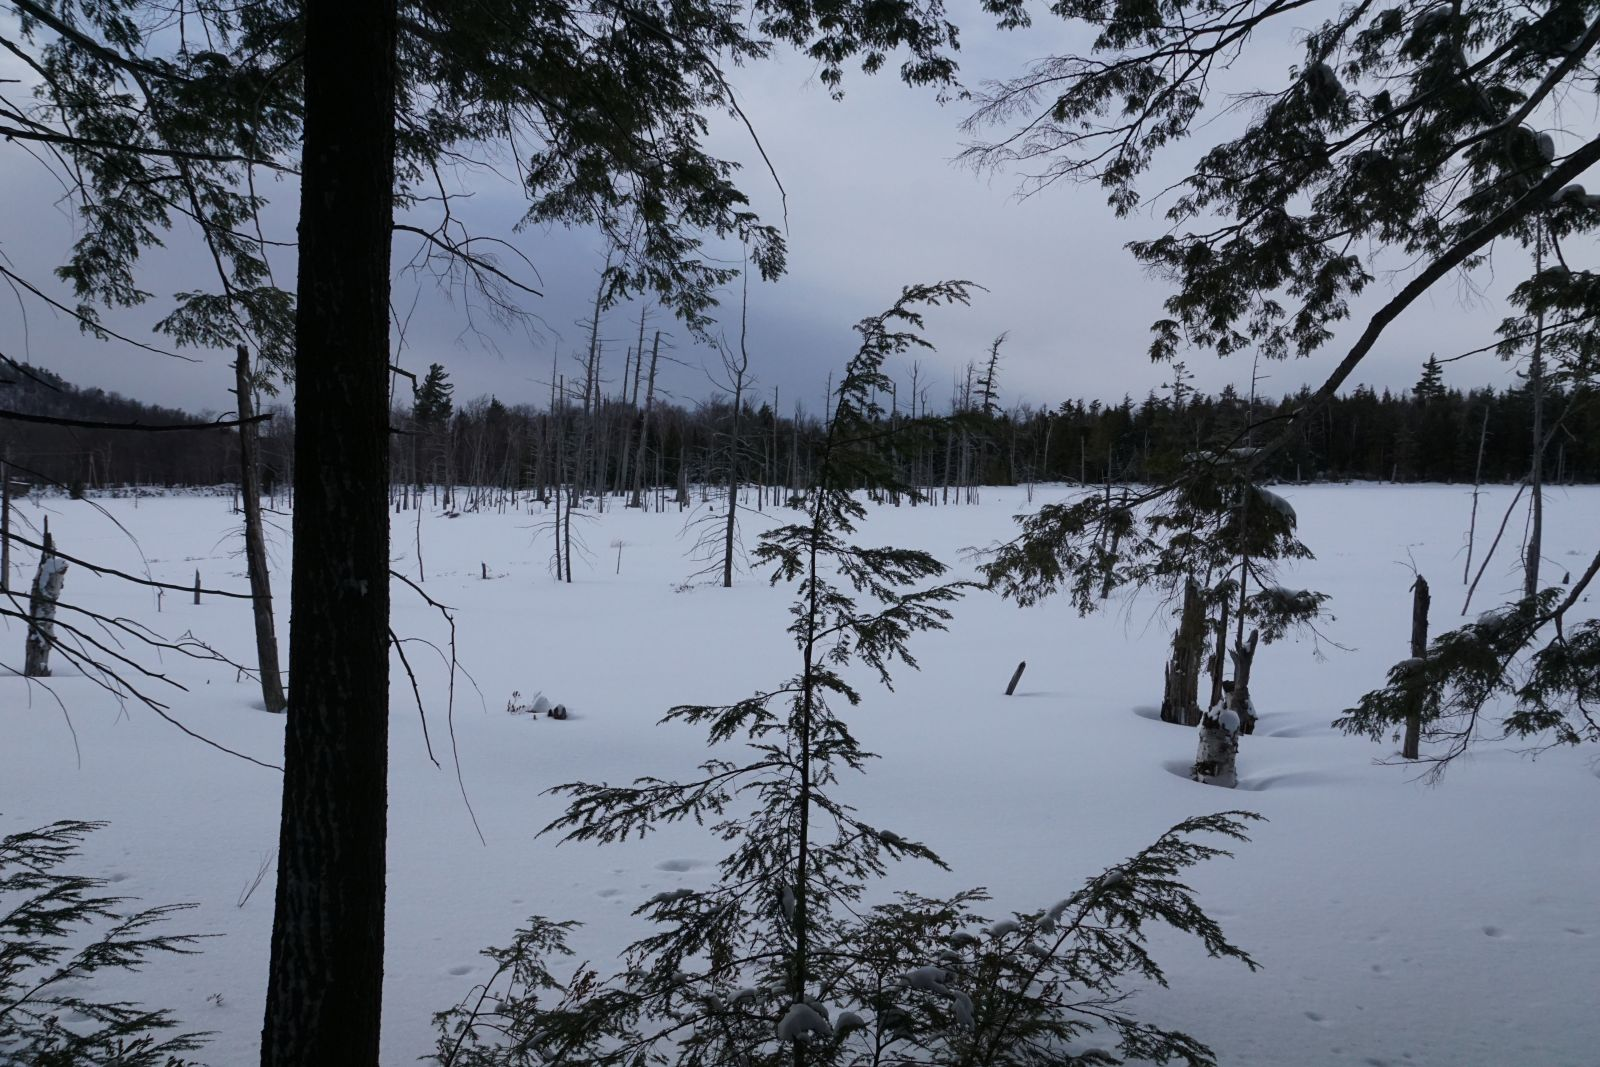 Cranberry Pond is a beautiful little water body.